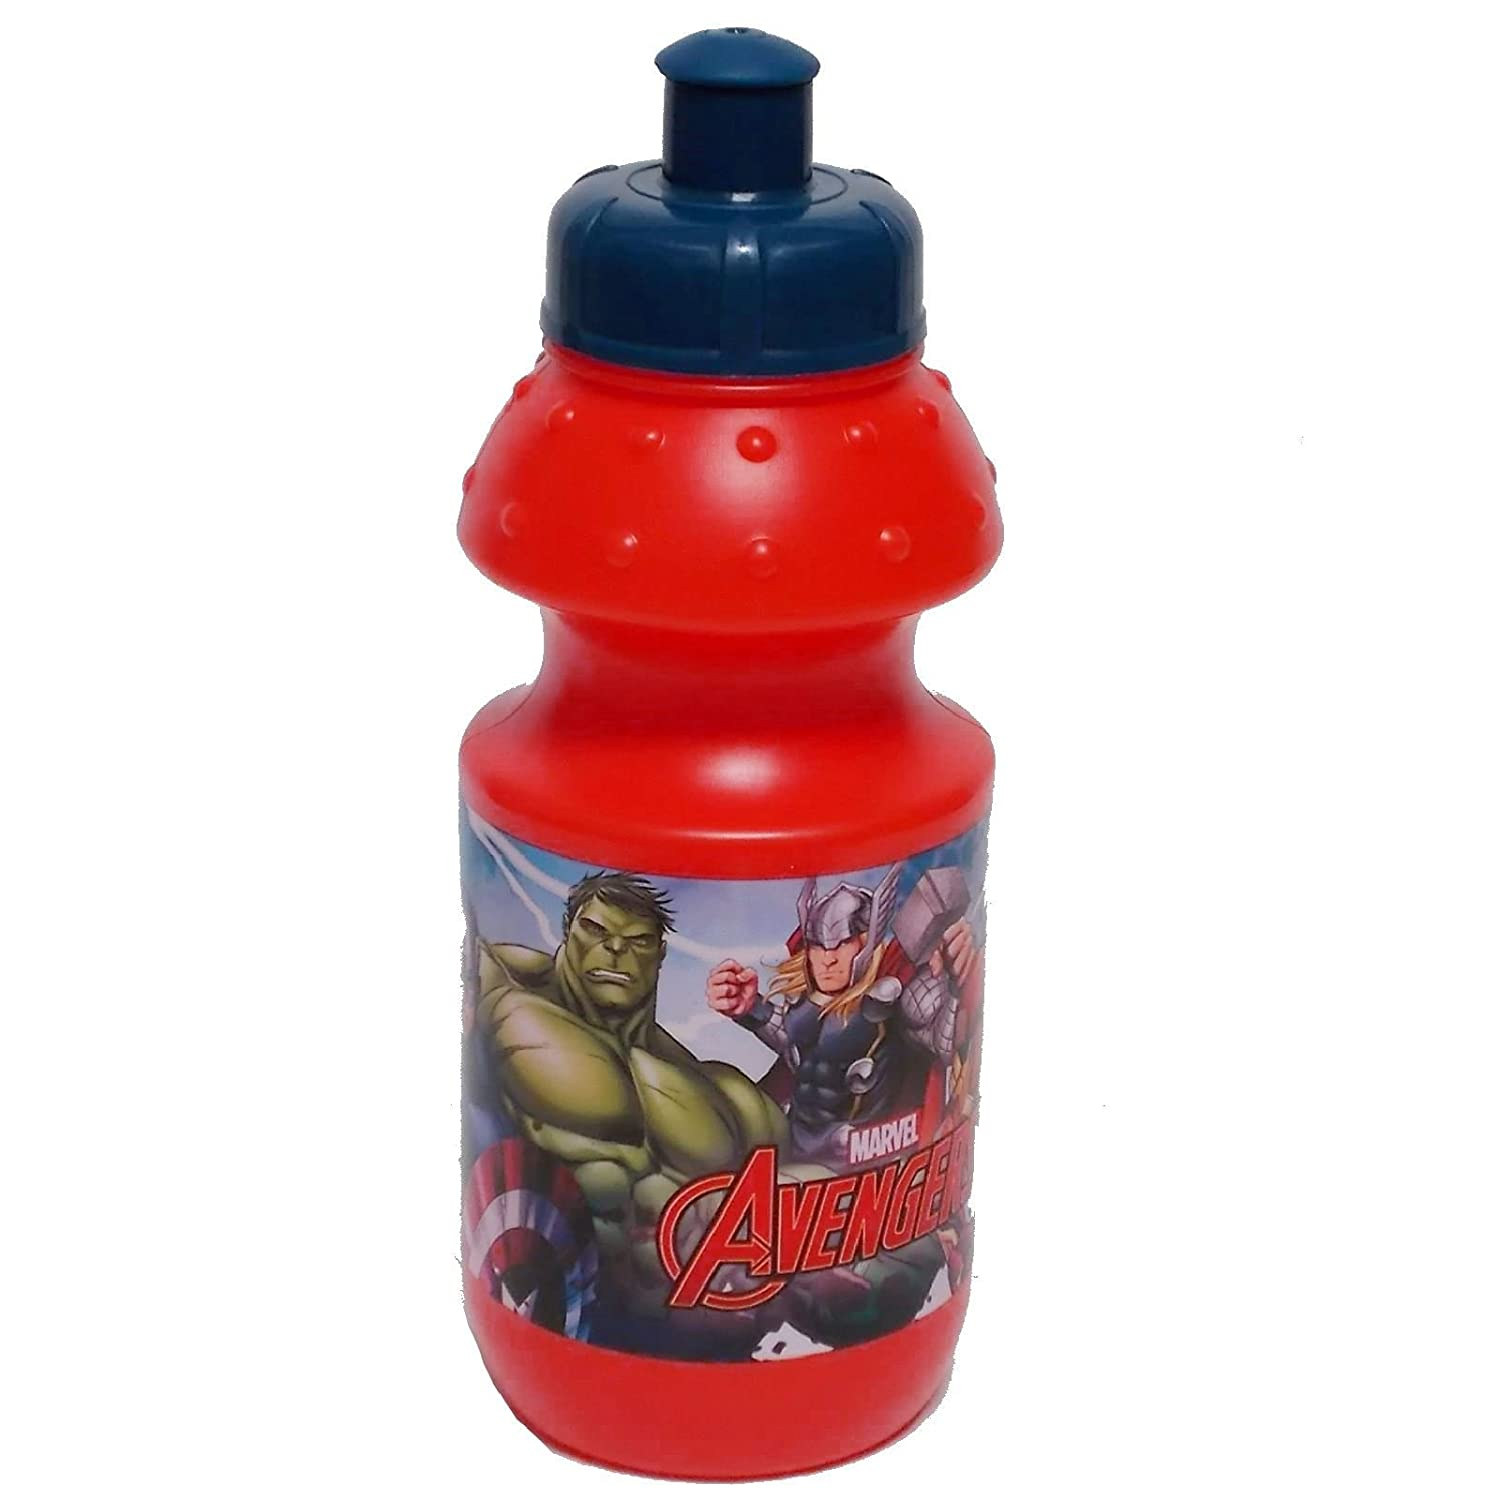 Star  Marvel Avengers Art Canteens And Lunch Box Set 3 Pezzi 48971 Code